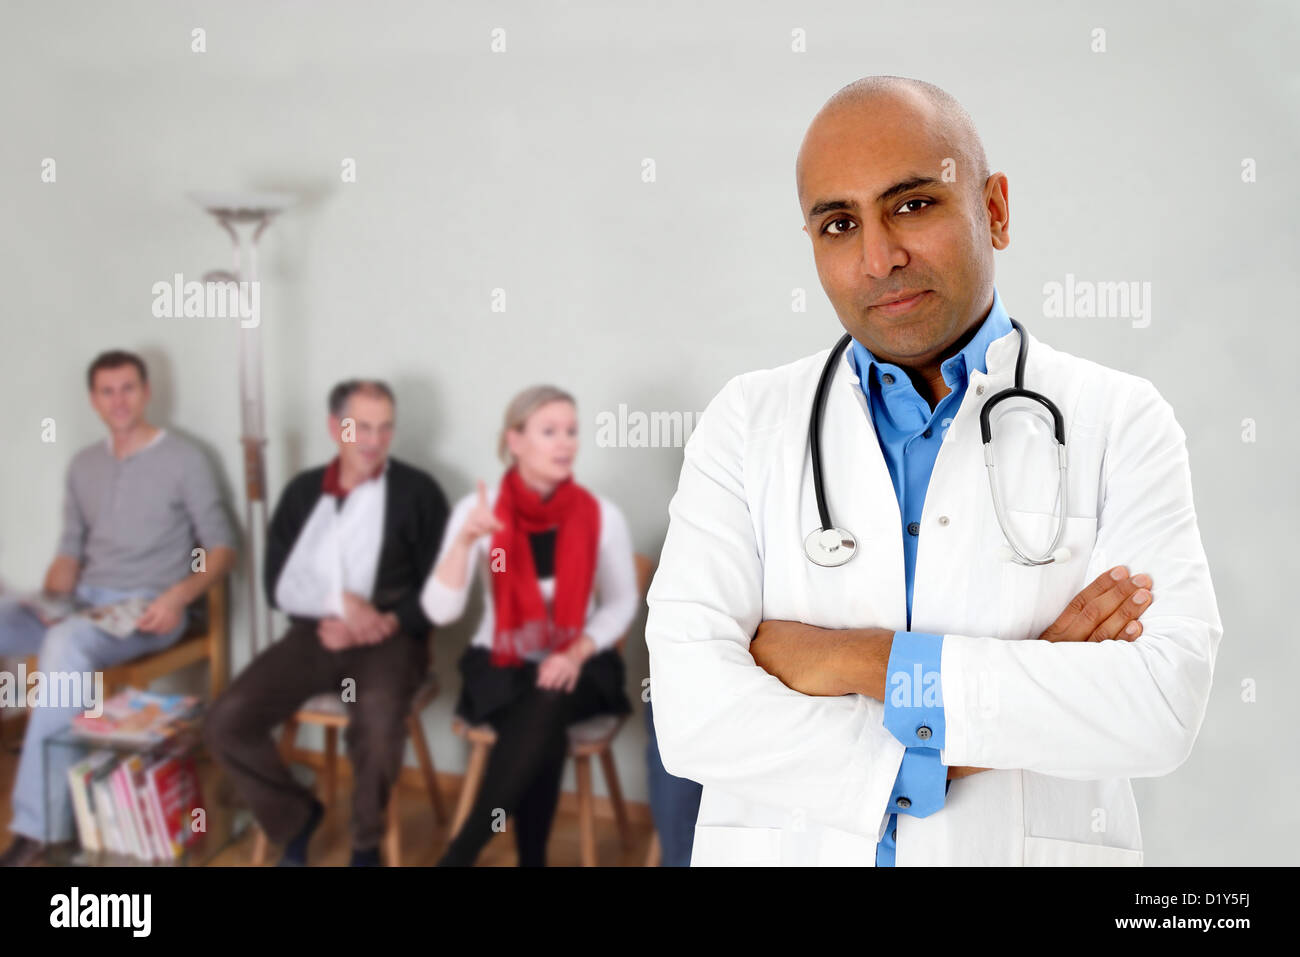 A dark skinned doctor an people waiting in a waiting room - Stock Image